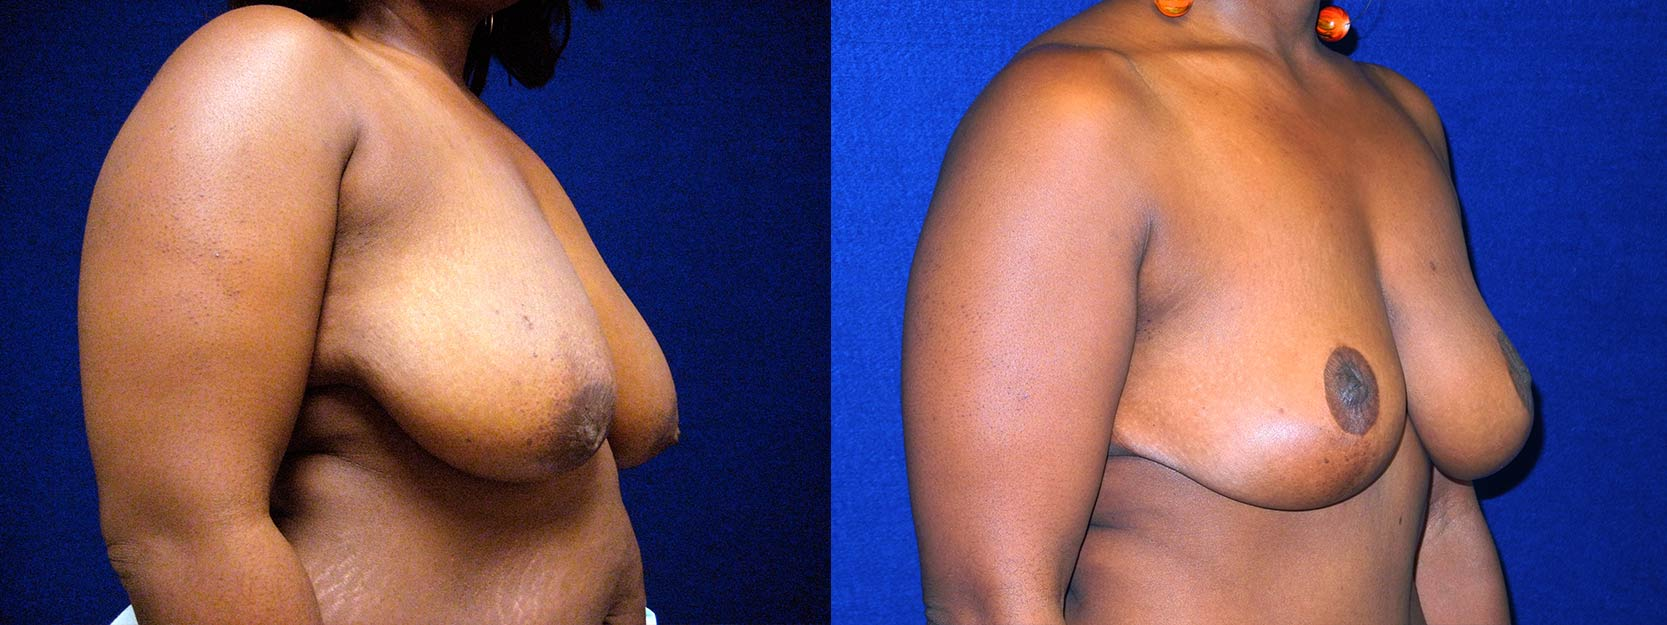 Right 3/4 View - Breast Reduction Lift